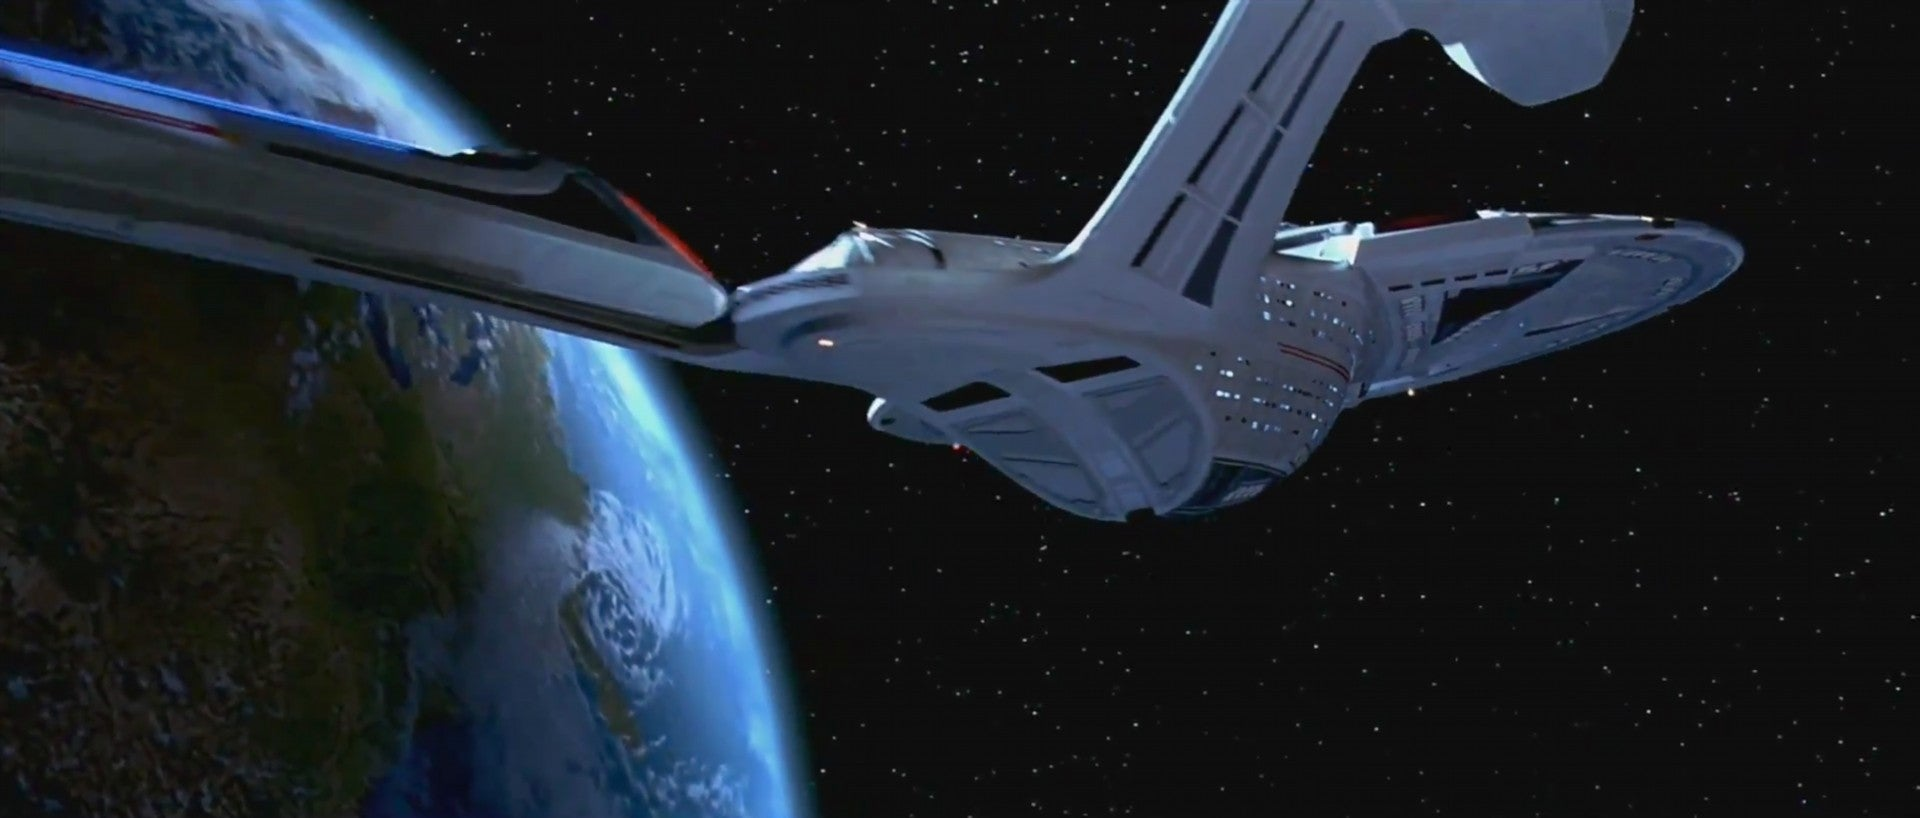 How To Get Into Star Trek If You Only Know the J.J. Abrams Movies